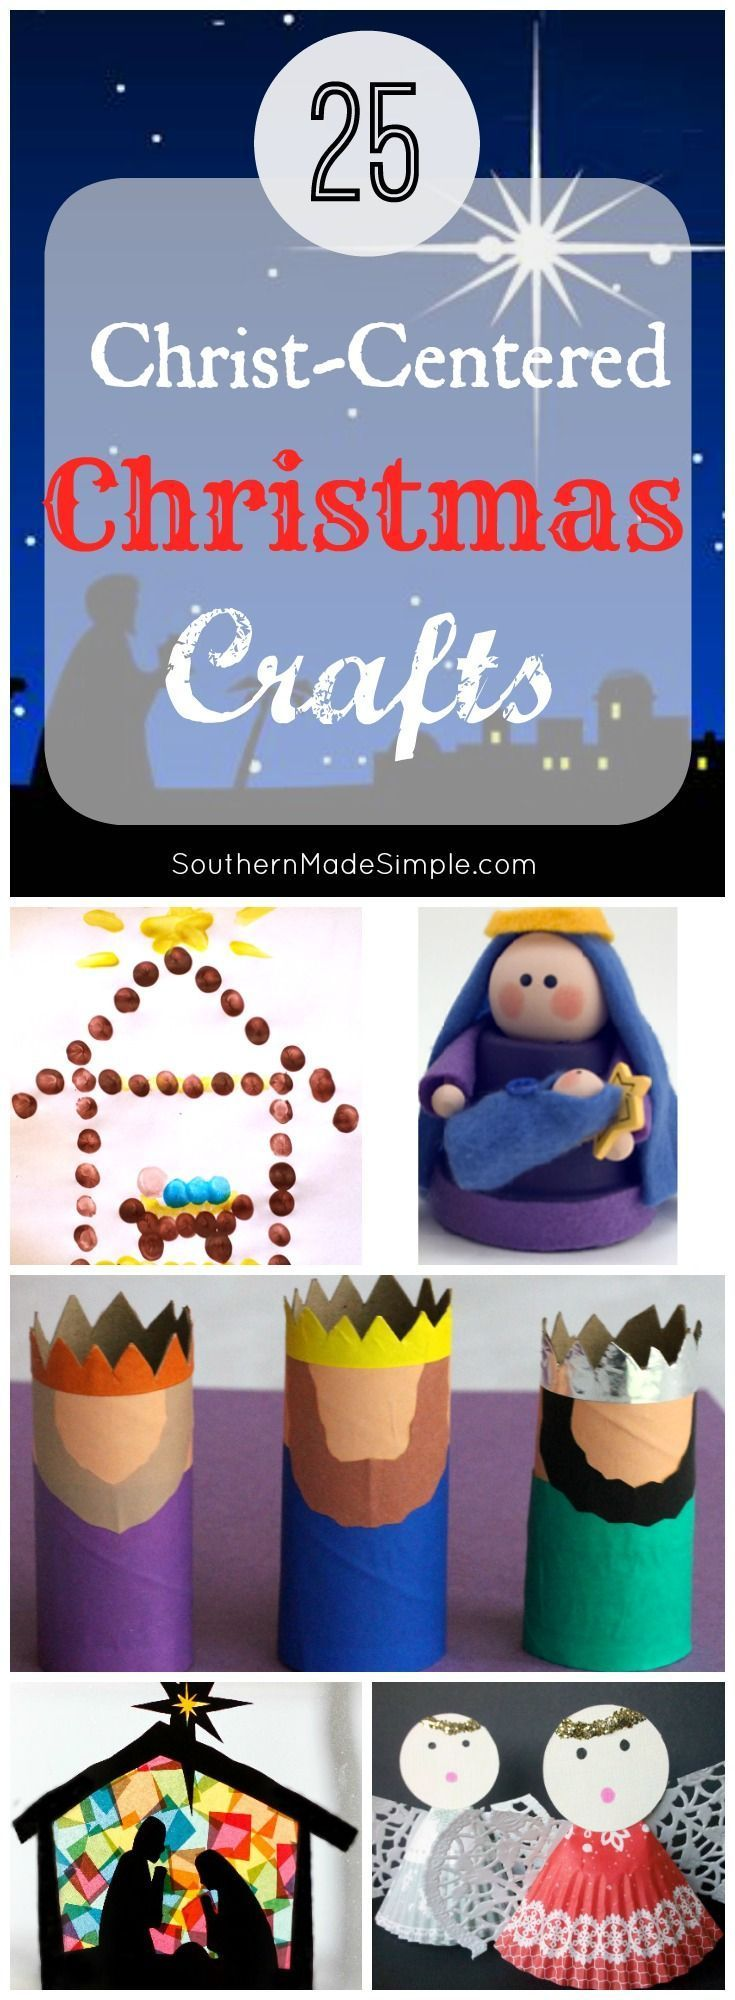 Worksheet. Best 25 Kids christmas crafts ideas on Pinterest  Christmas